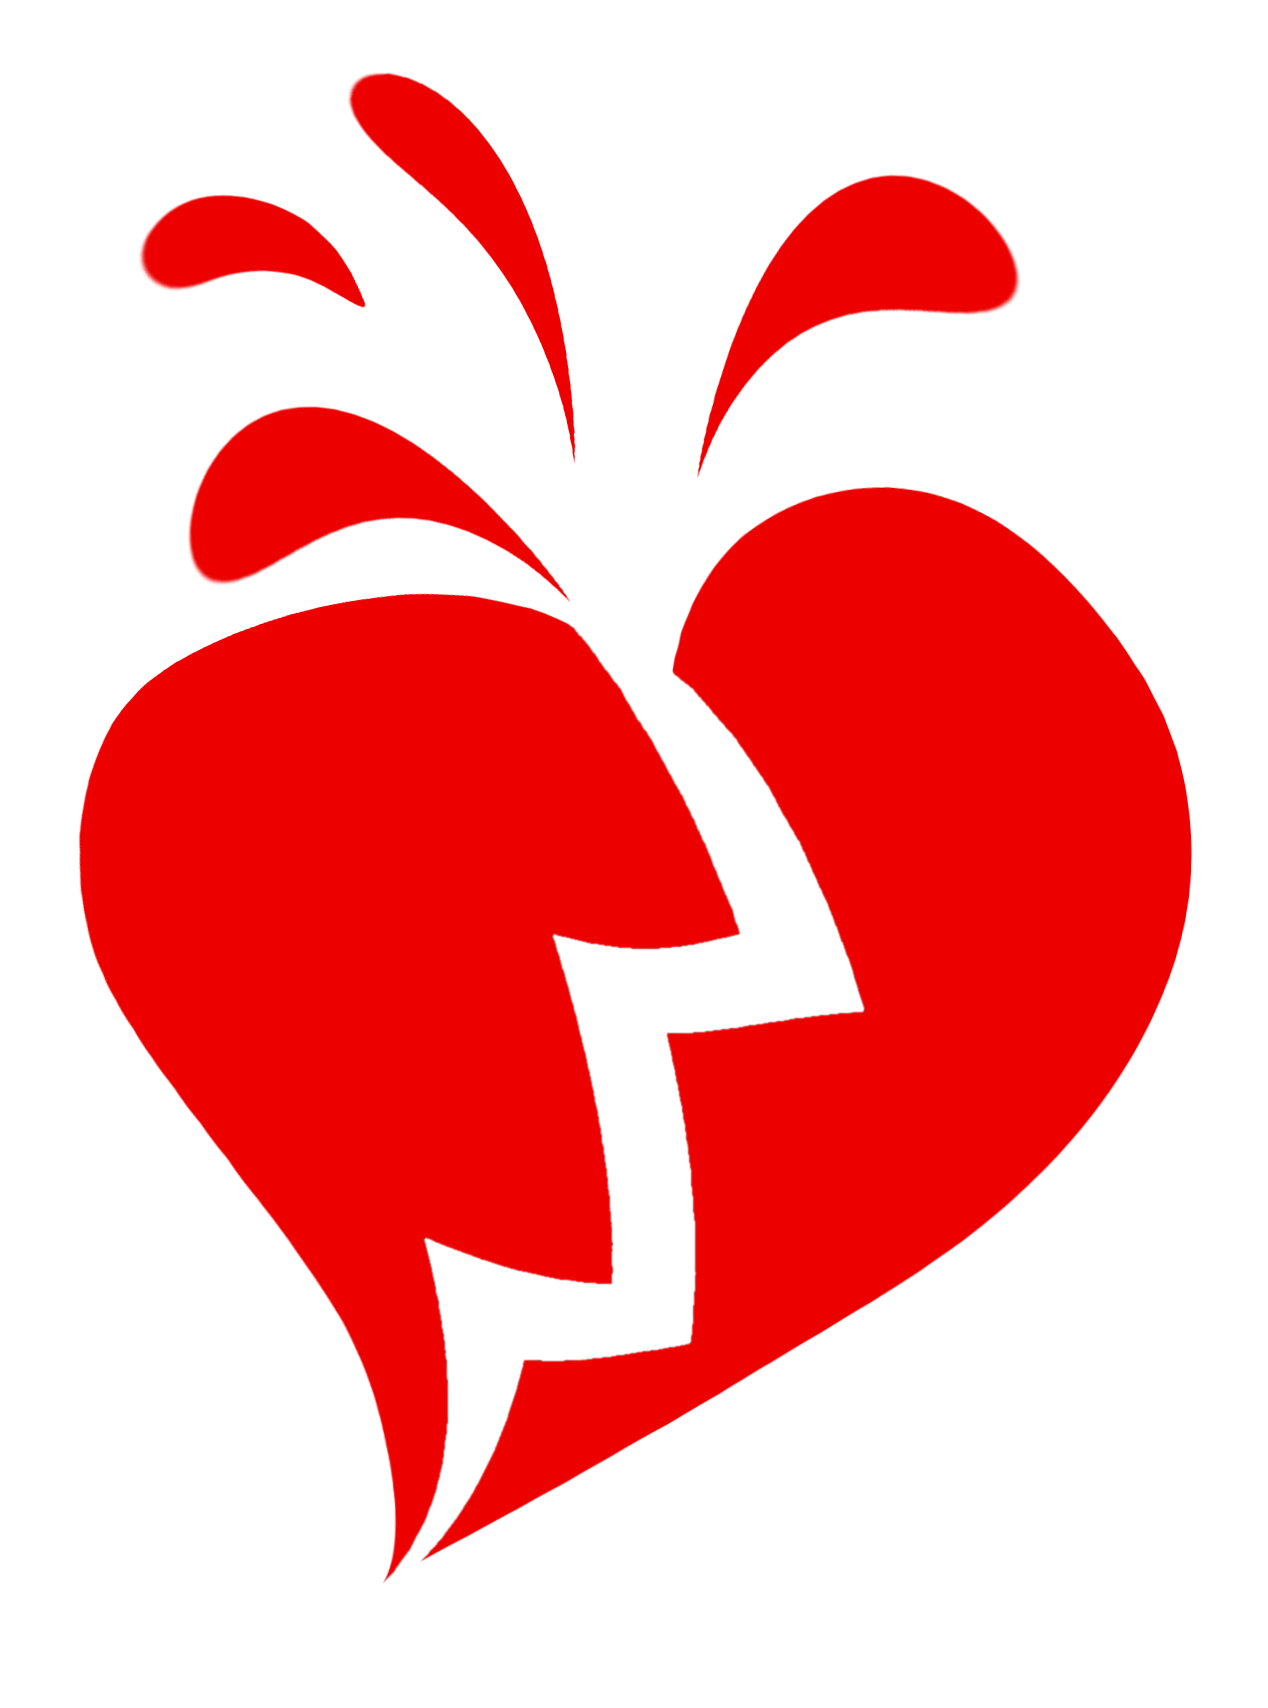 Download Free High quality Broken Heart Png Transparent Images